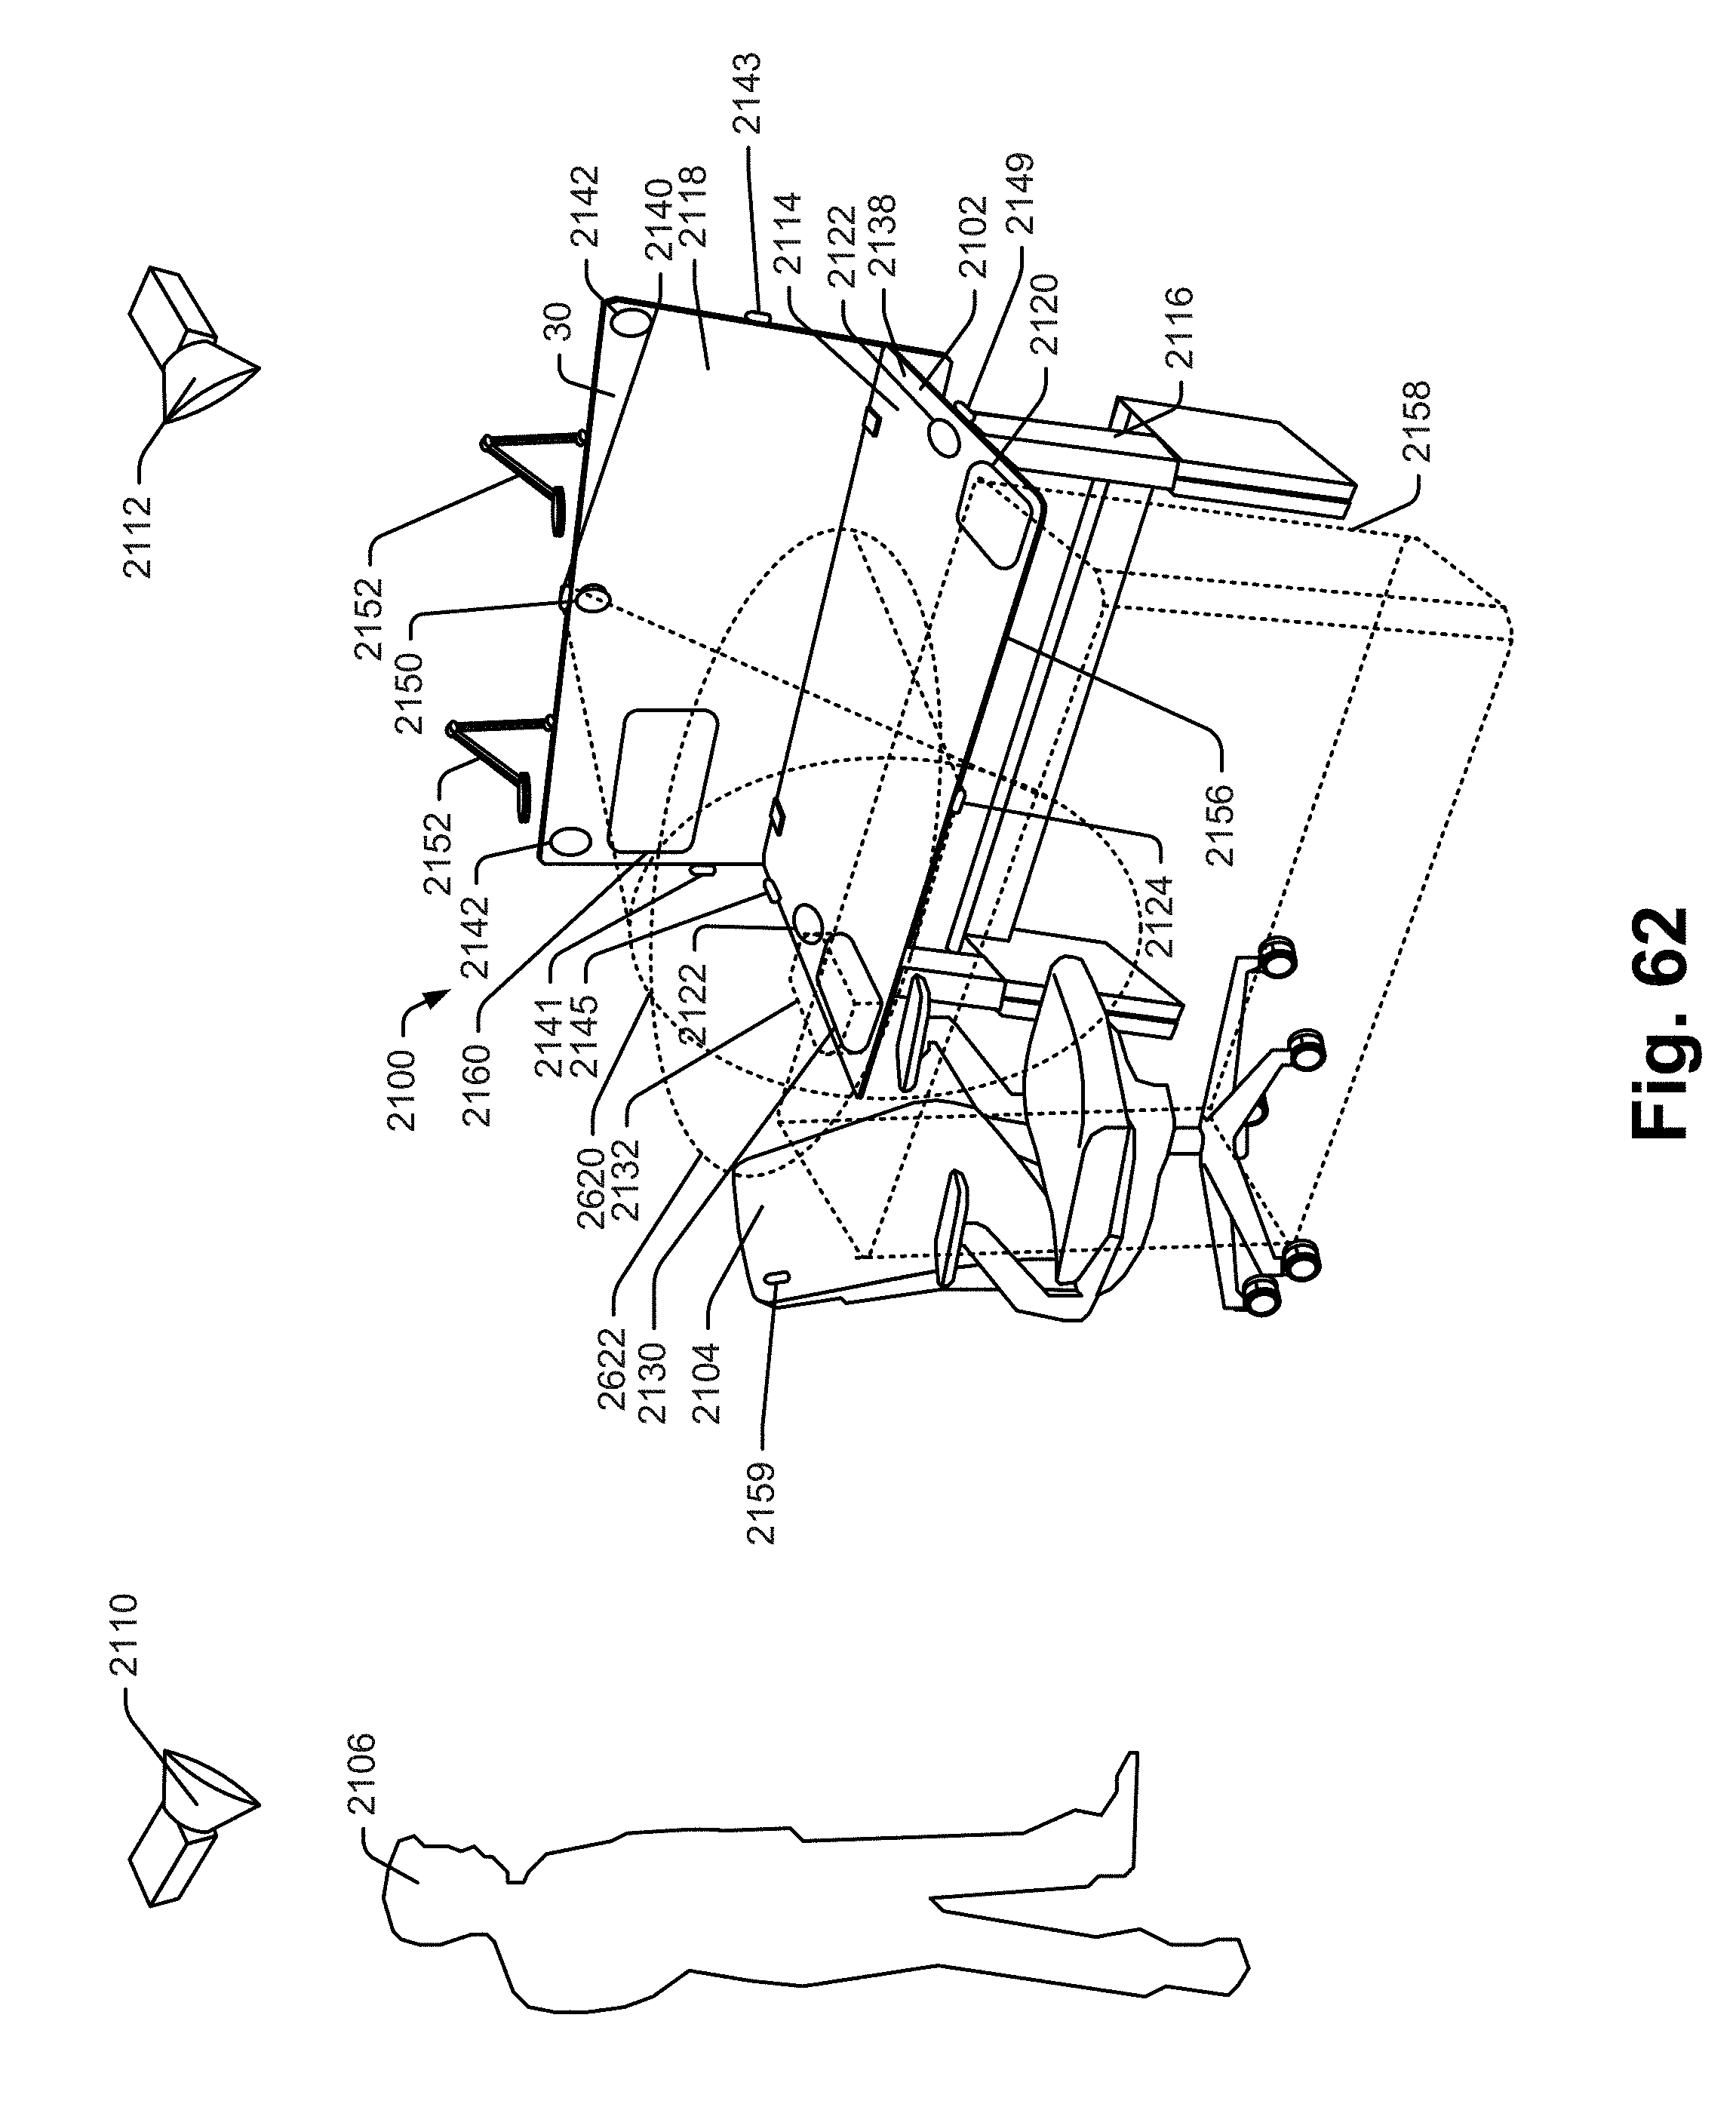 patent us 9 921 726 b1 Rib Relay Wiring Diagram patent images